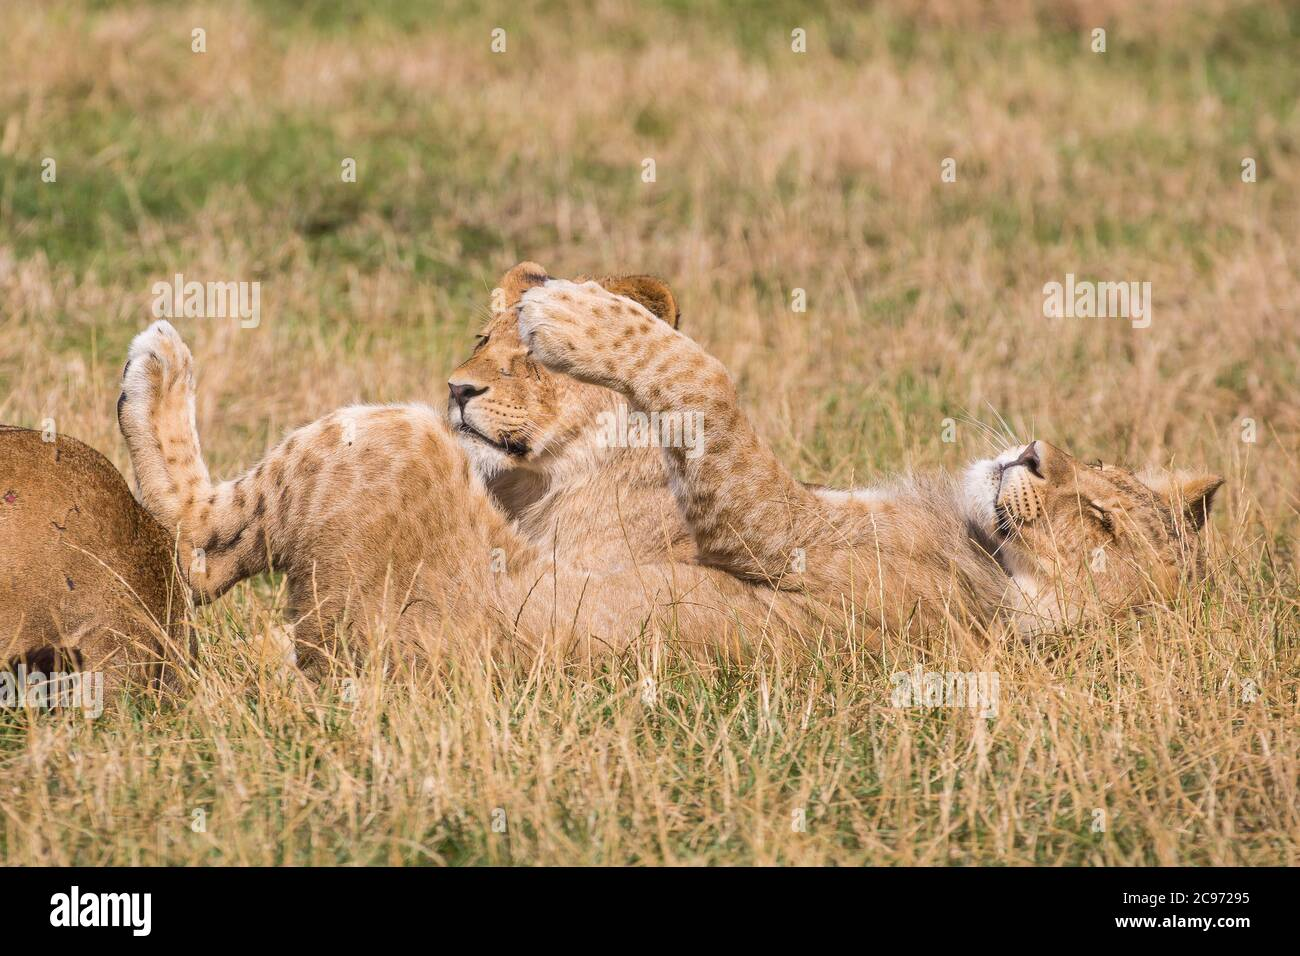 Close up of two adorable African lion cubs (Panthera leo) lying in long grass relaxing, one on its back stretching out enjoying summer sunshine heat. Stock Photo